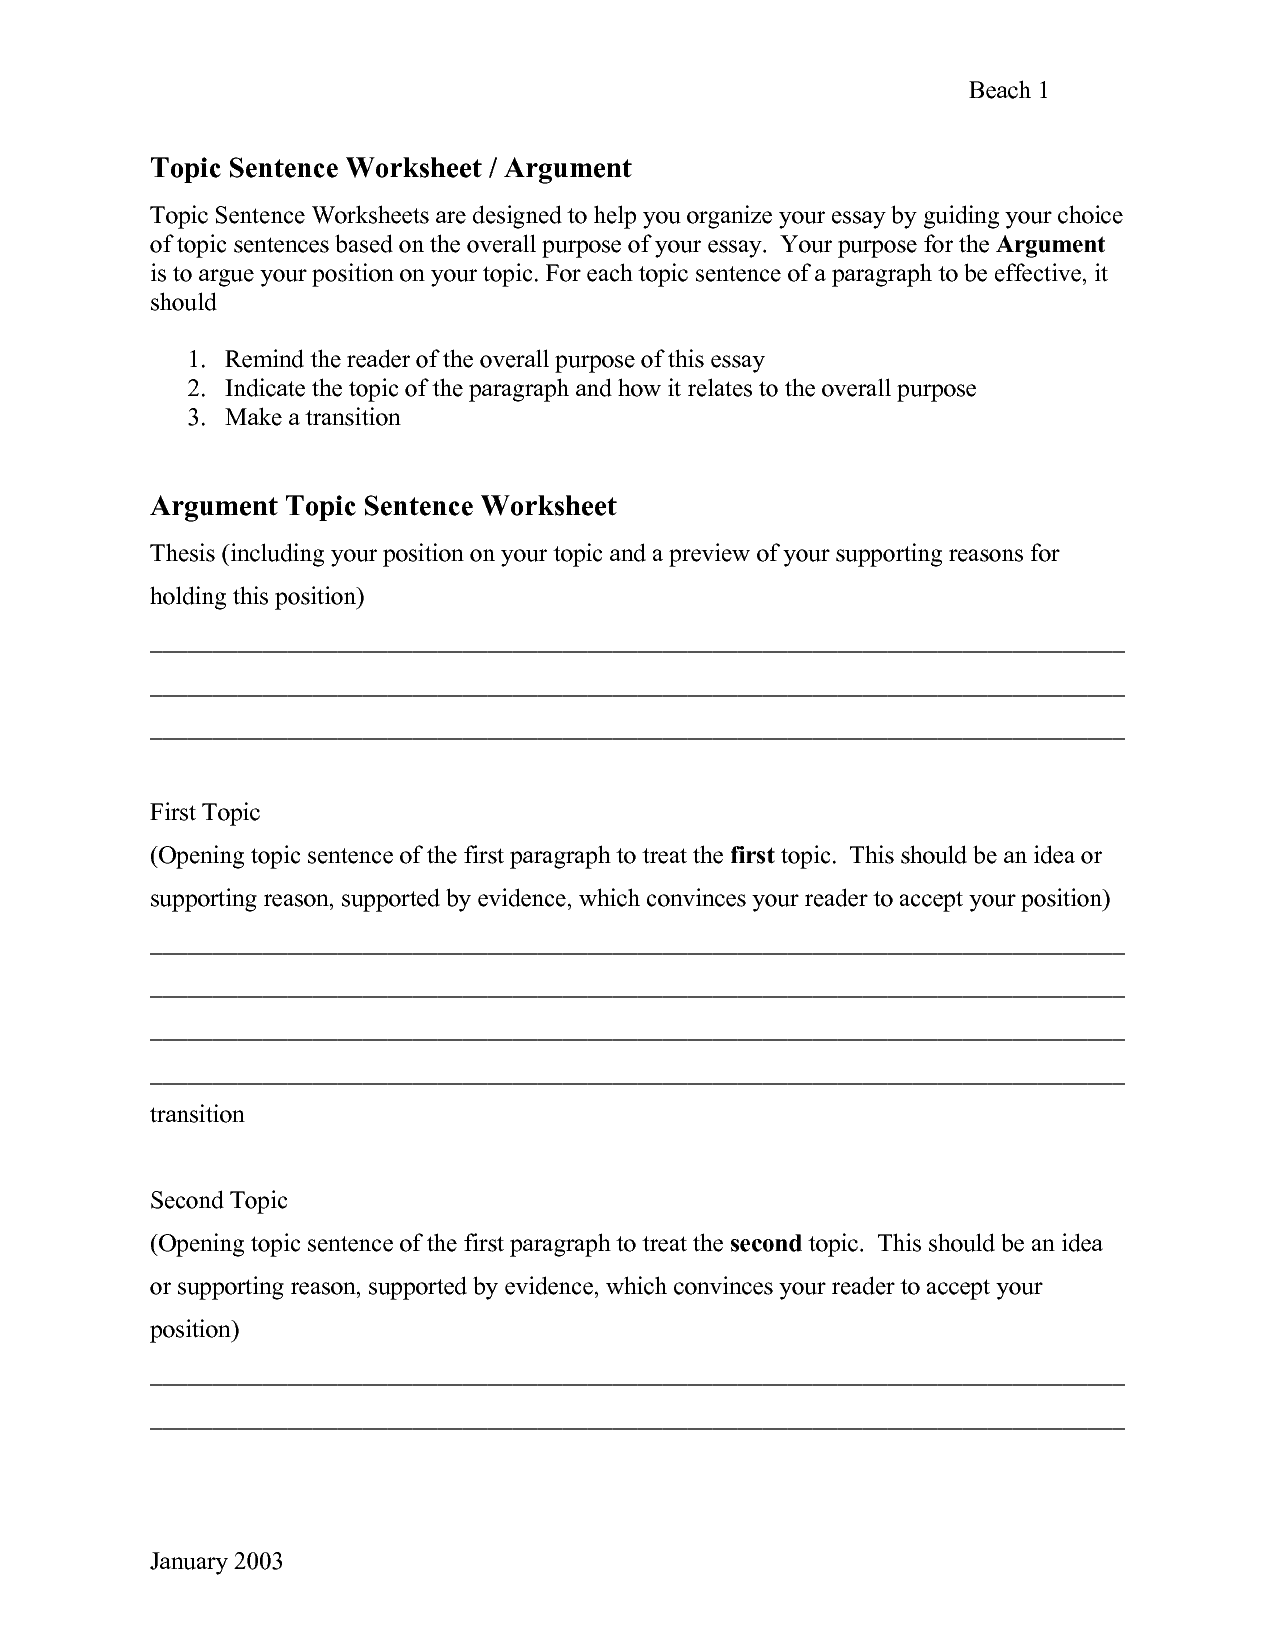 hight resolution of scope of work template   Topic sentences